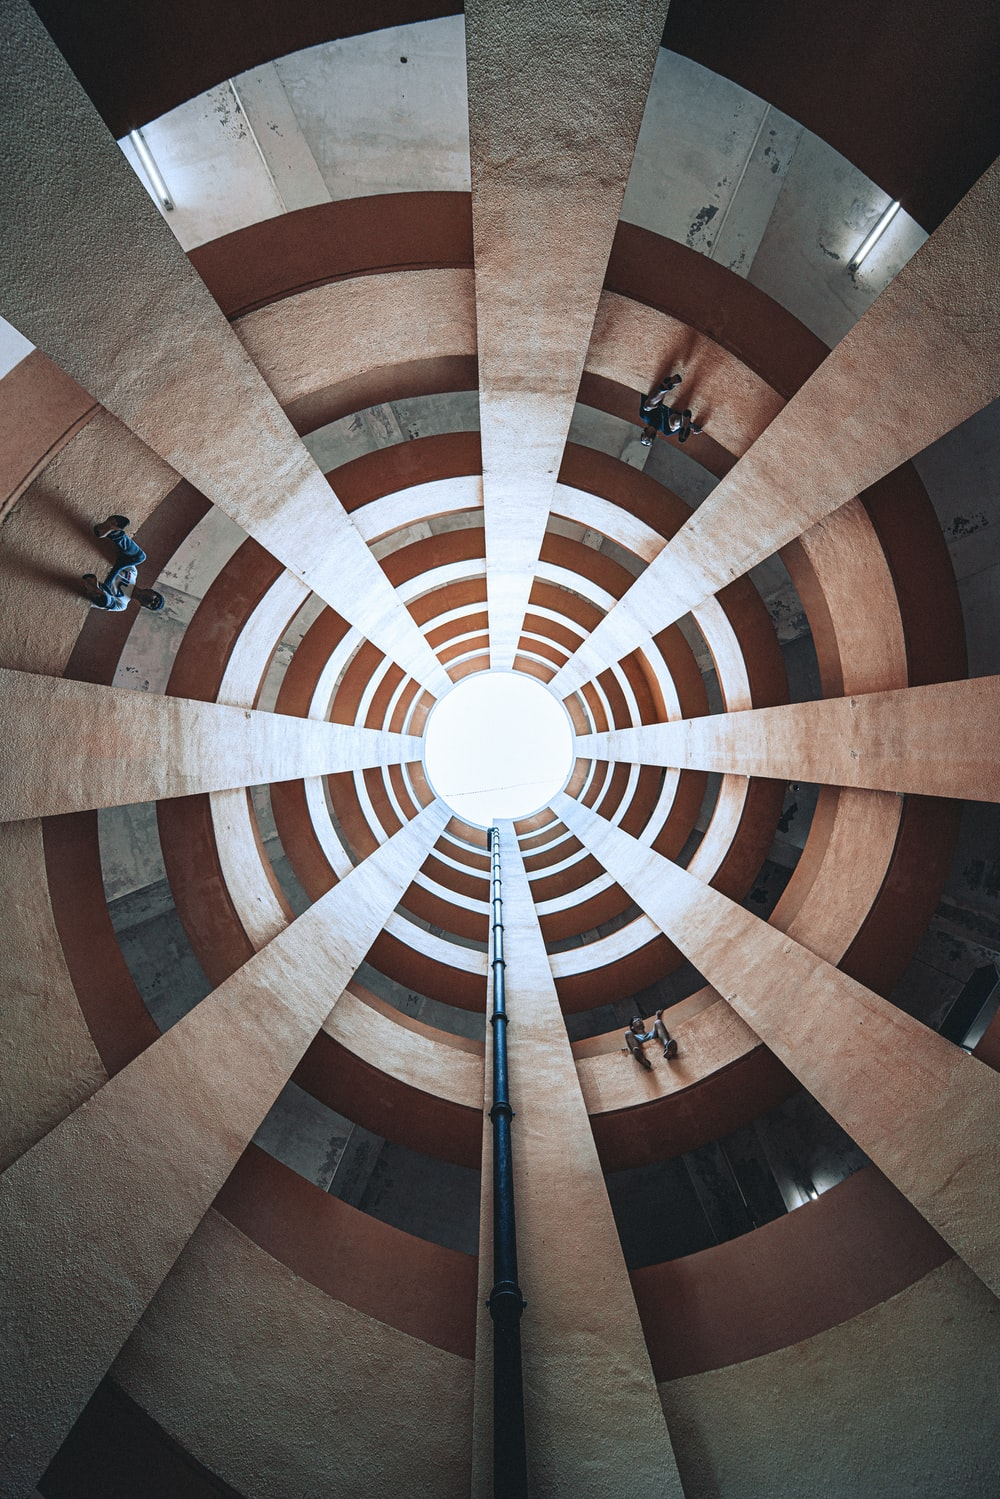 spiral view of people inside building